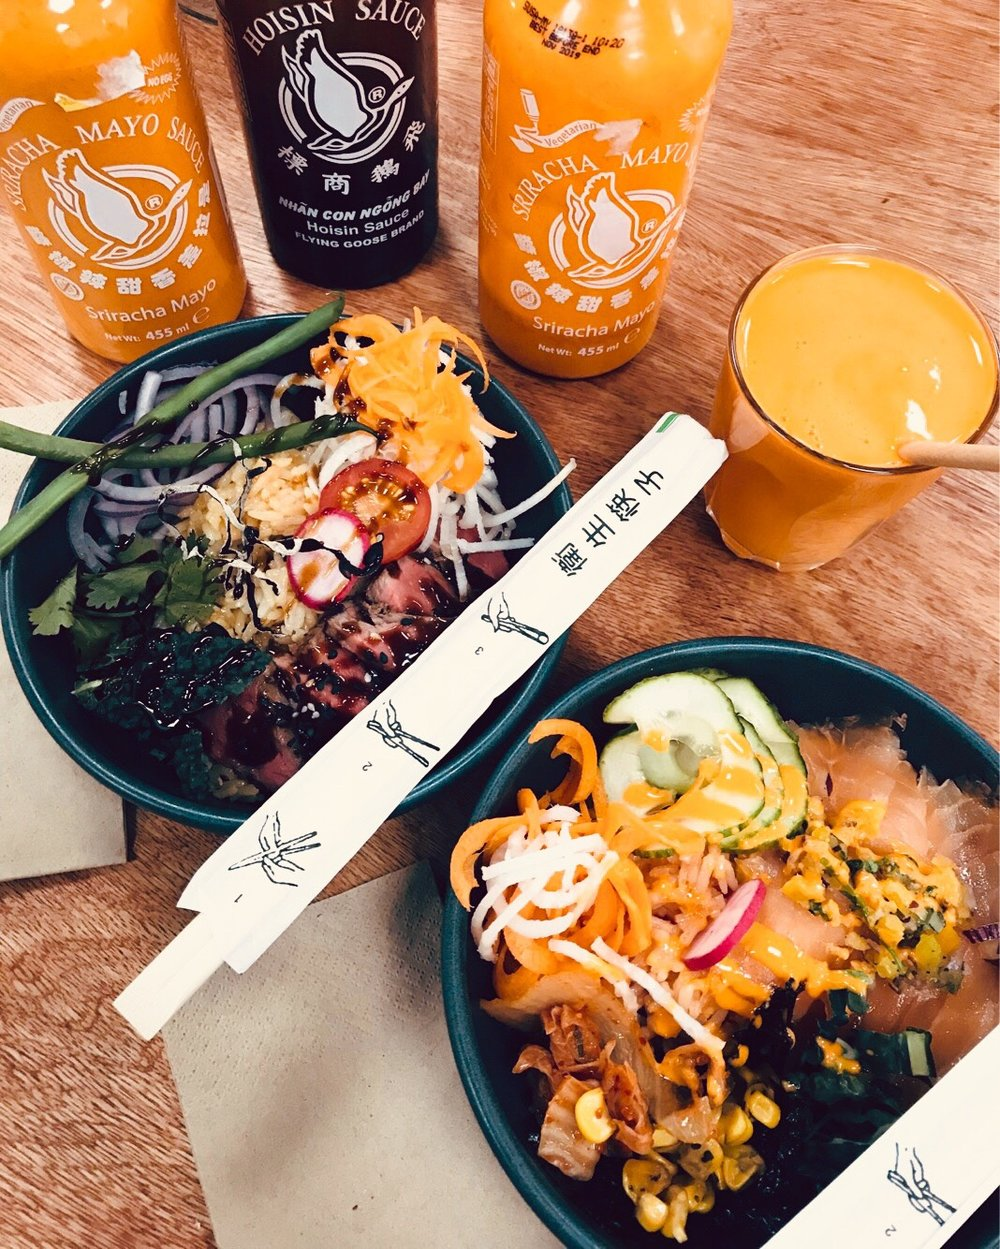 Kohi - Glasgow's first Poke (pronounced poh-kay) bowl takeaway. Kohi will introduce the poke bowl concept to Glasgow after it has become one of the world's fastest growing culinary concepts.